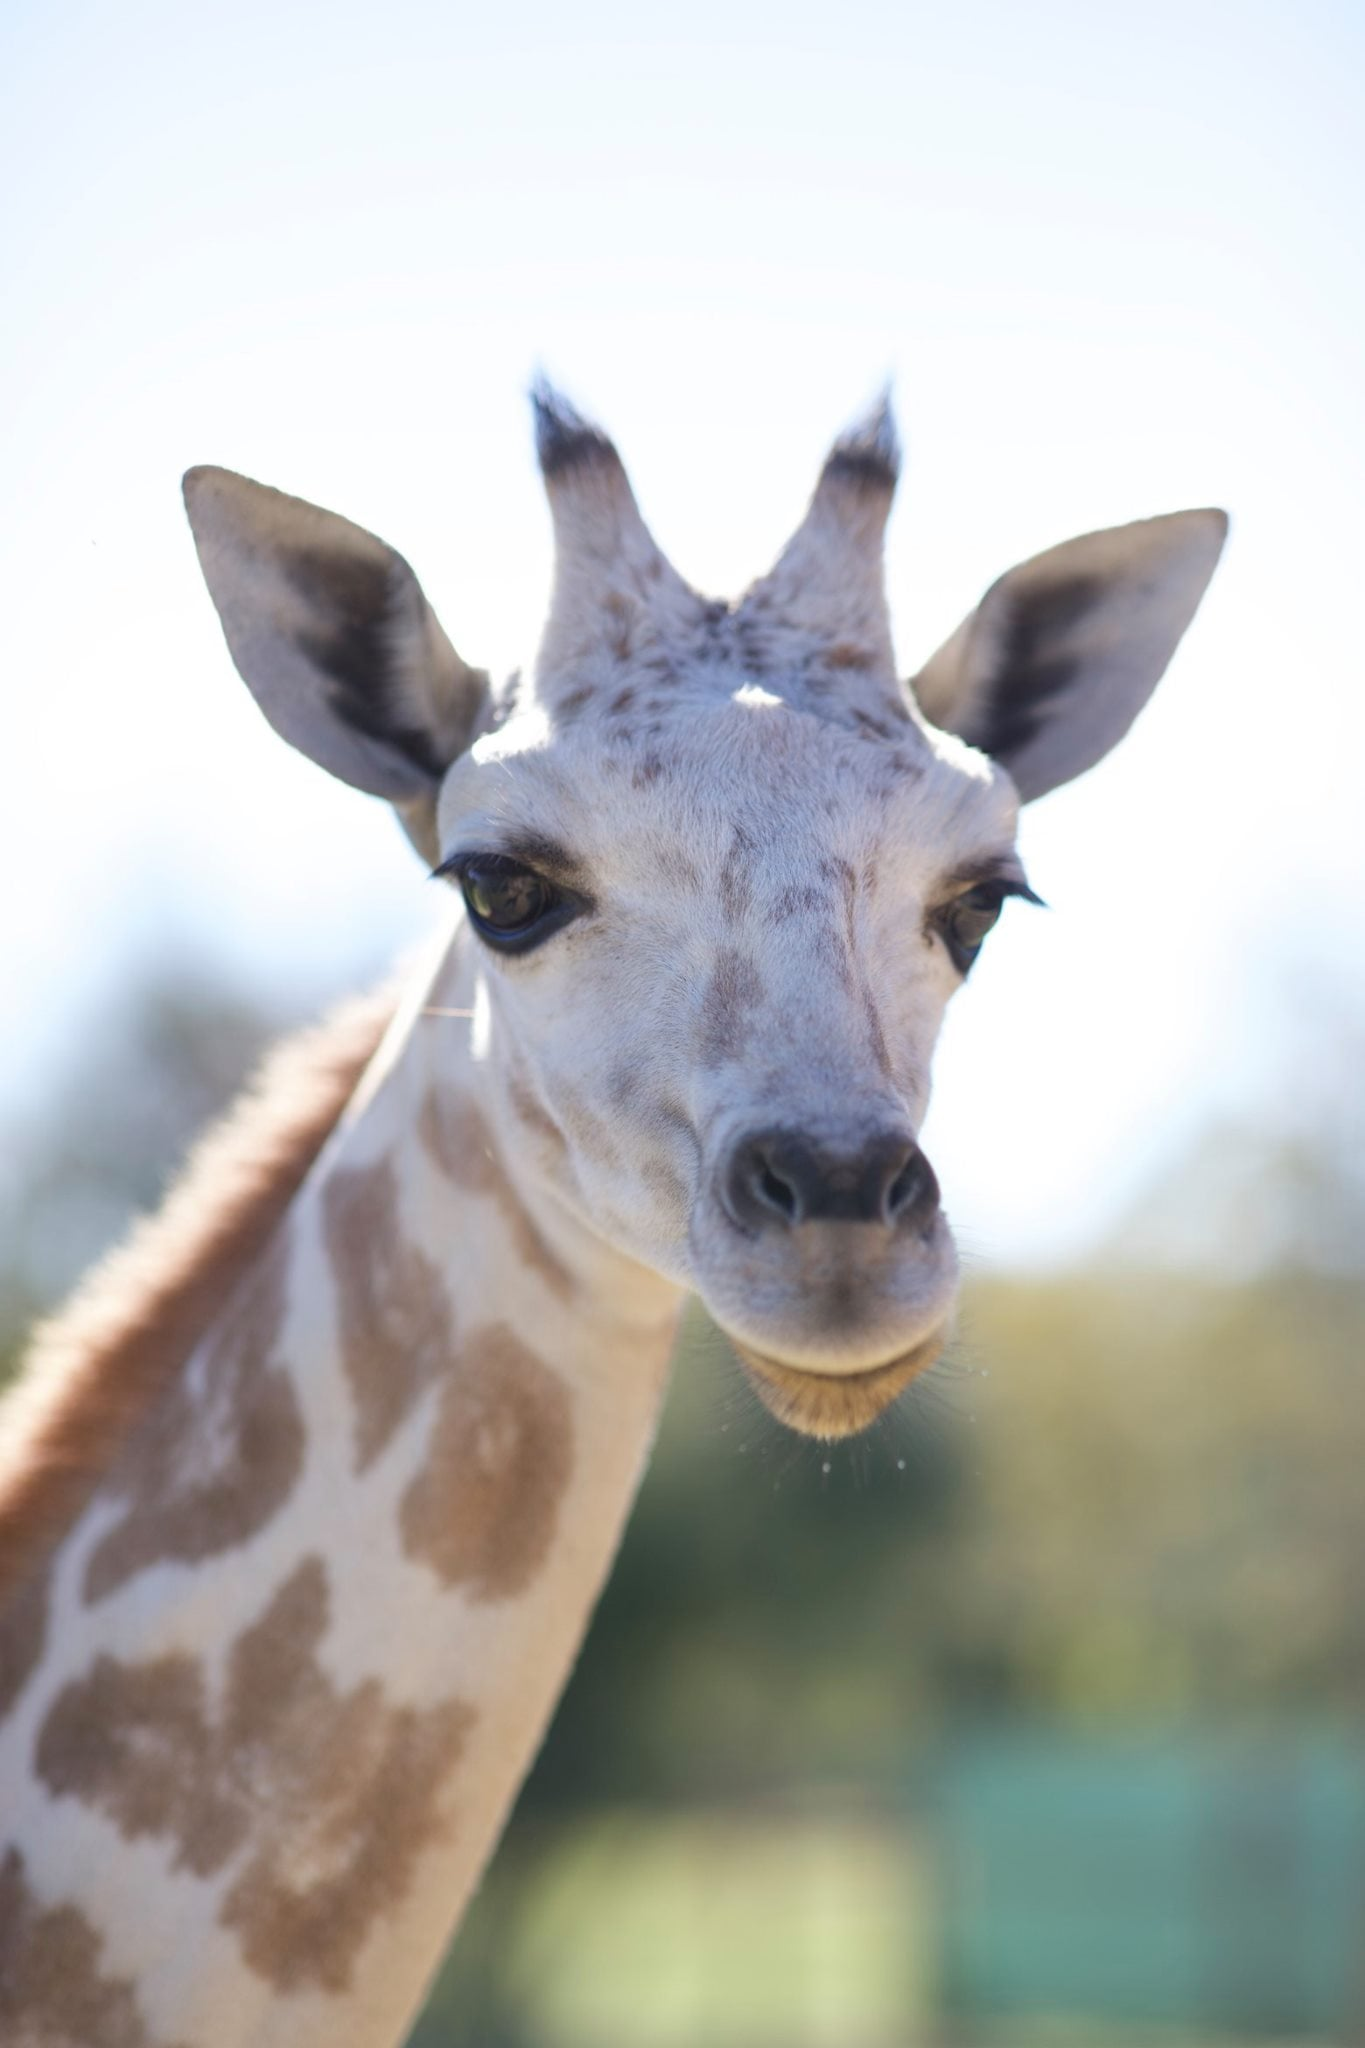 Who Wants To Have Lunch With Giraffes?  There's A Place In Louisiana Where You Can!